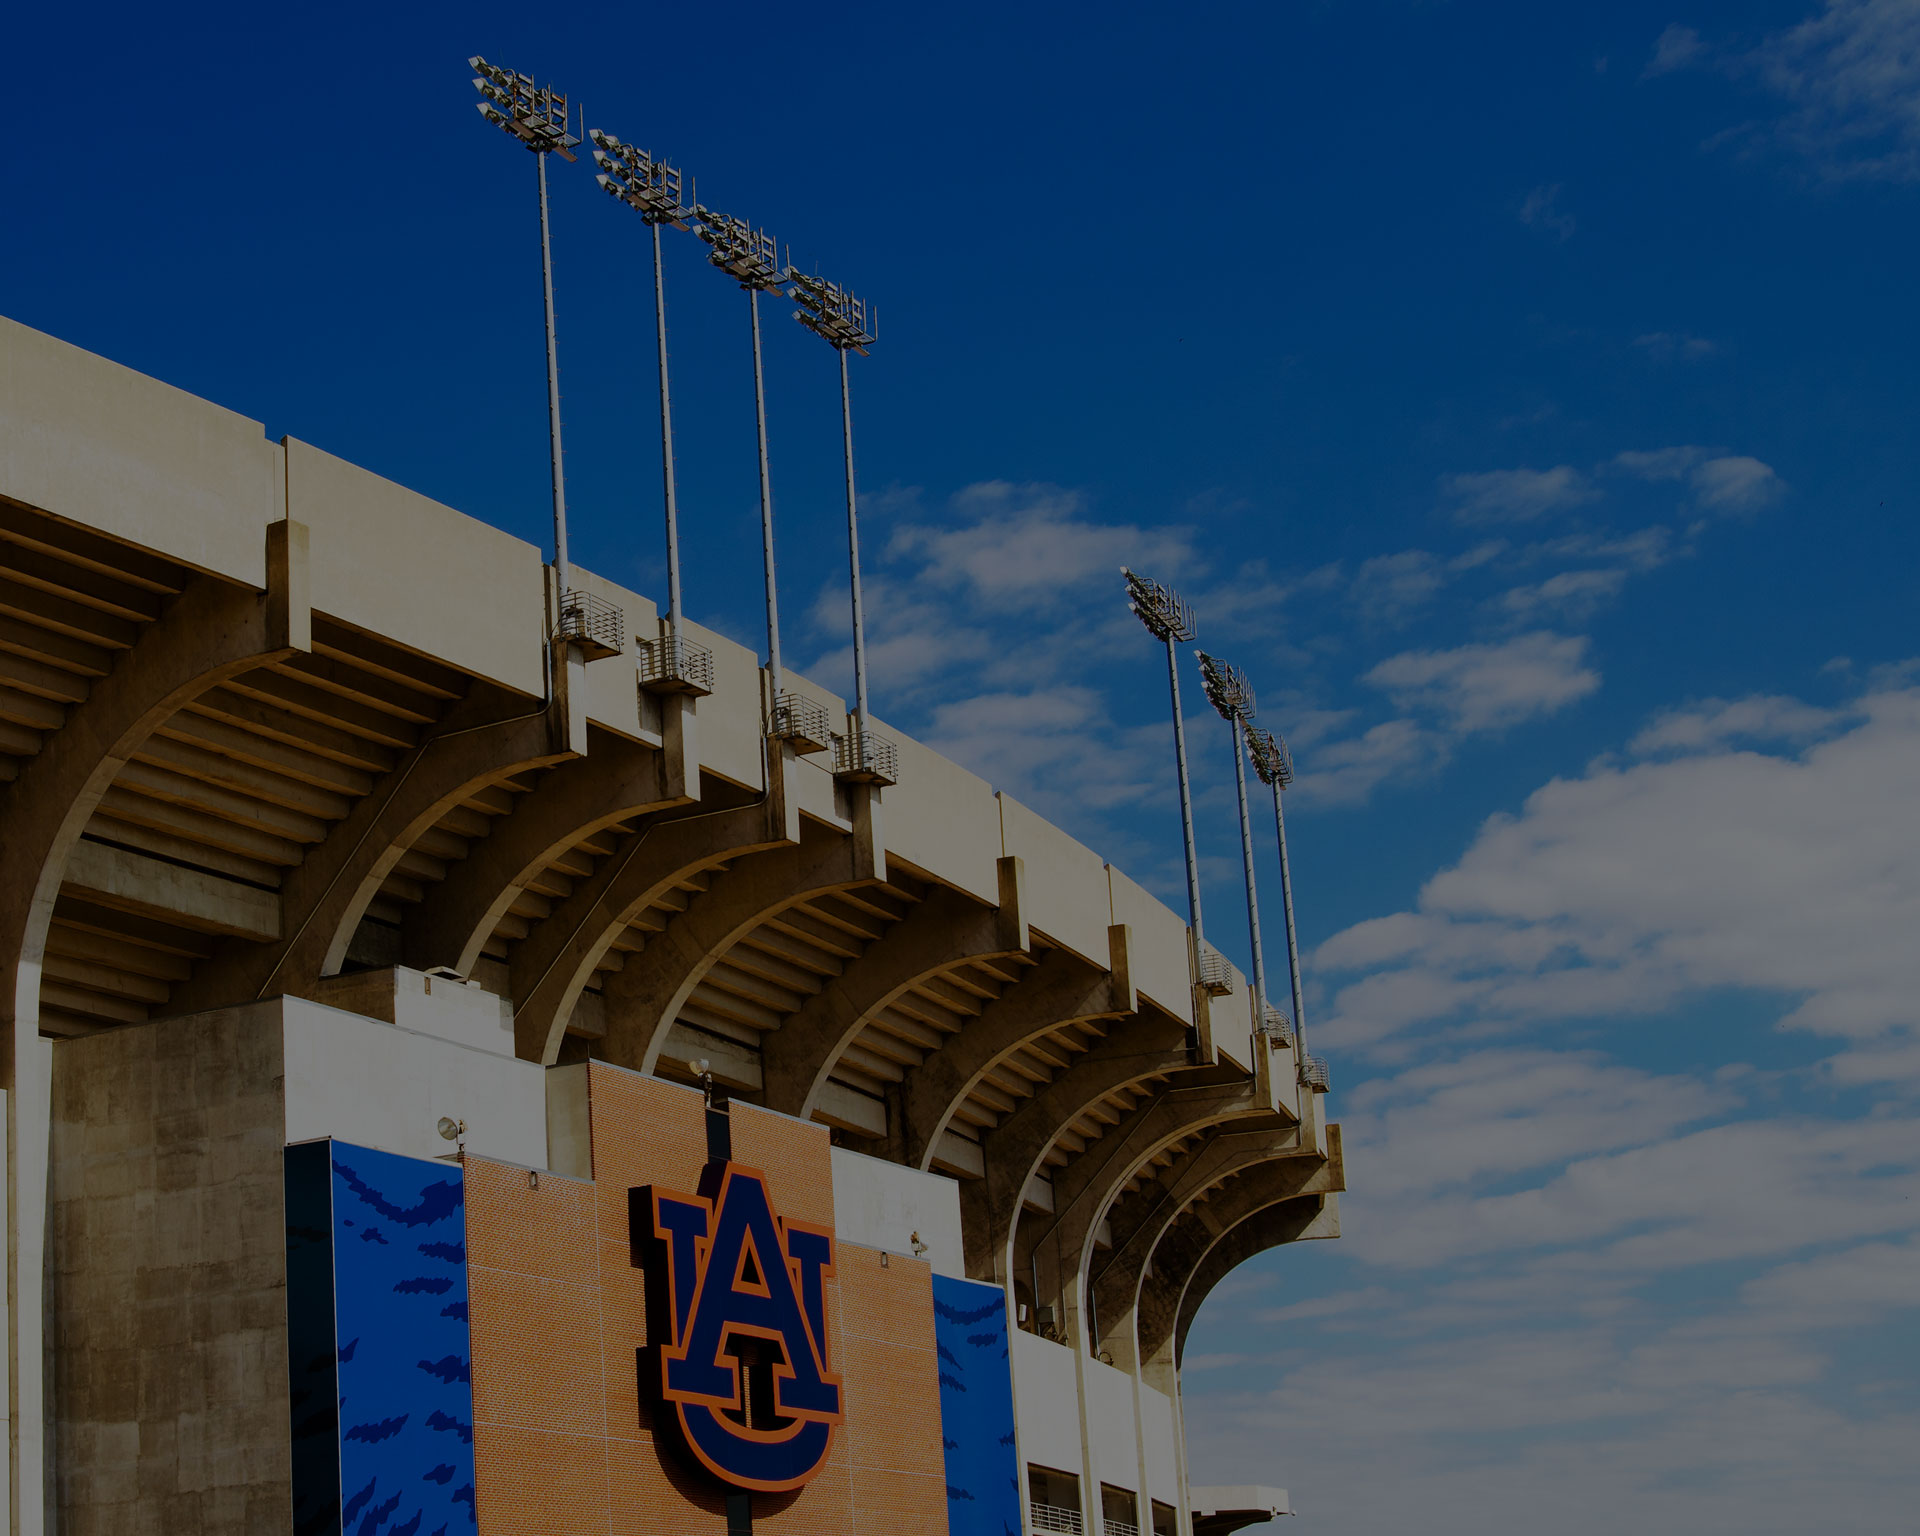 The stadium is the home field for the 2010 NCAA Champion Auburn Tigers.